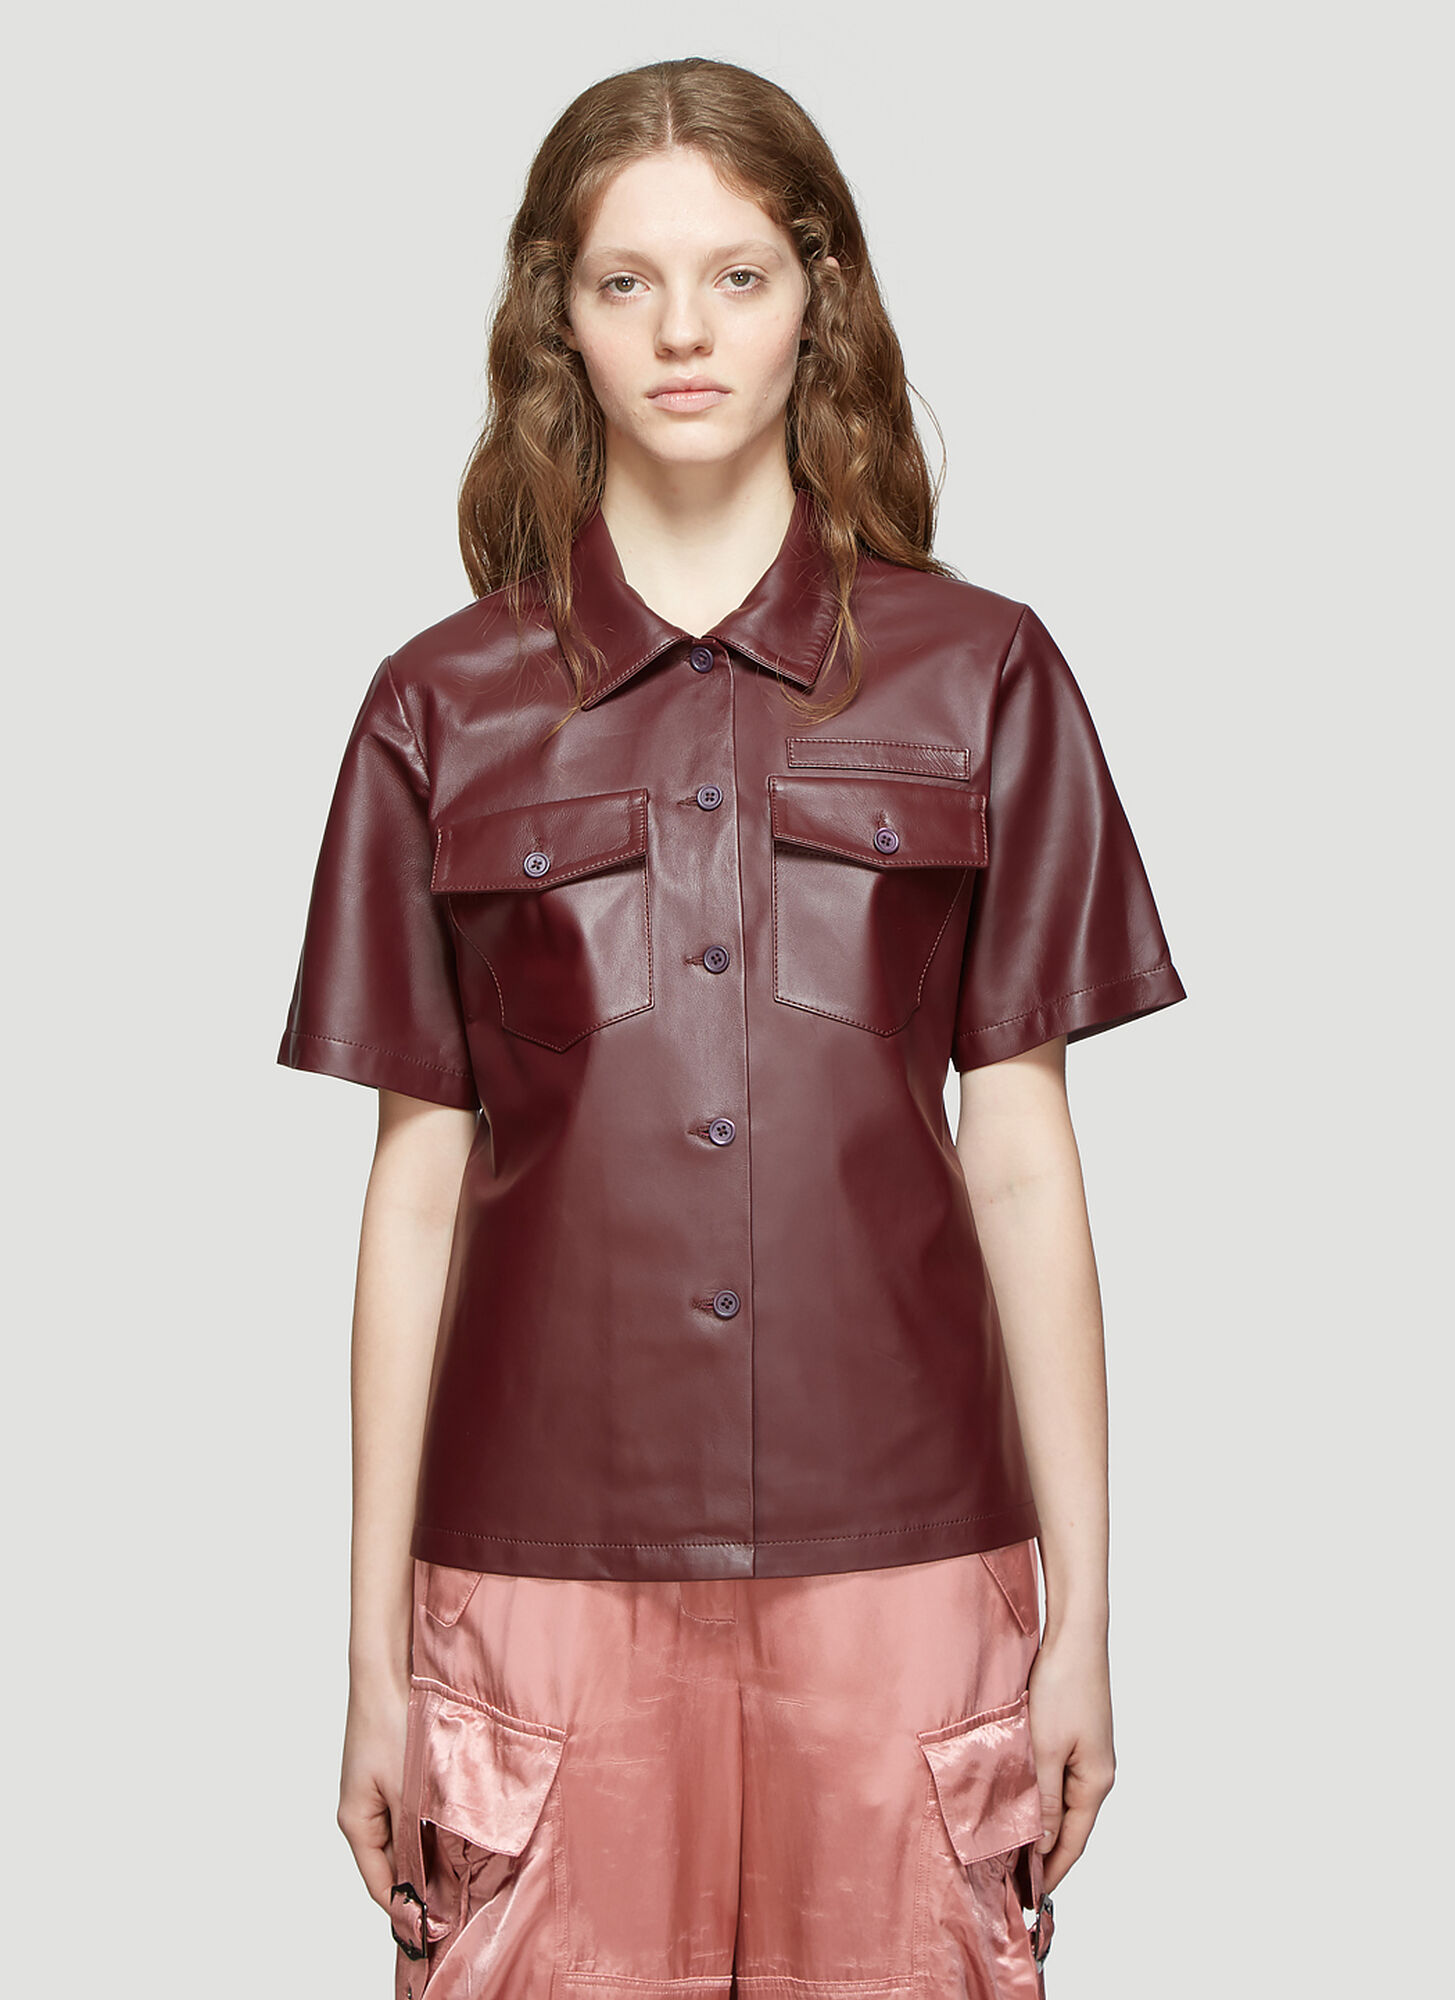 Sies Marjan Nico Leather Pocket Button Shirt in Burgundy